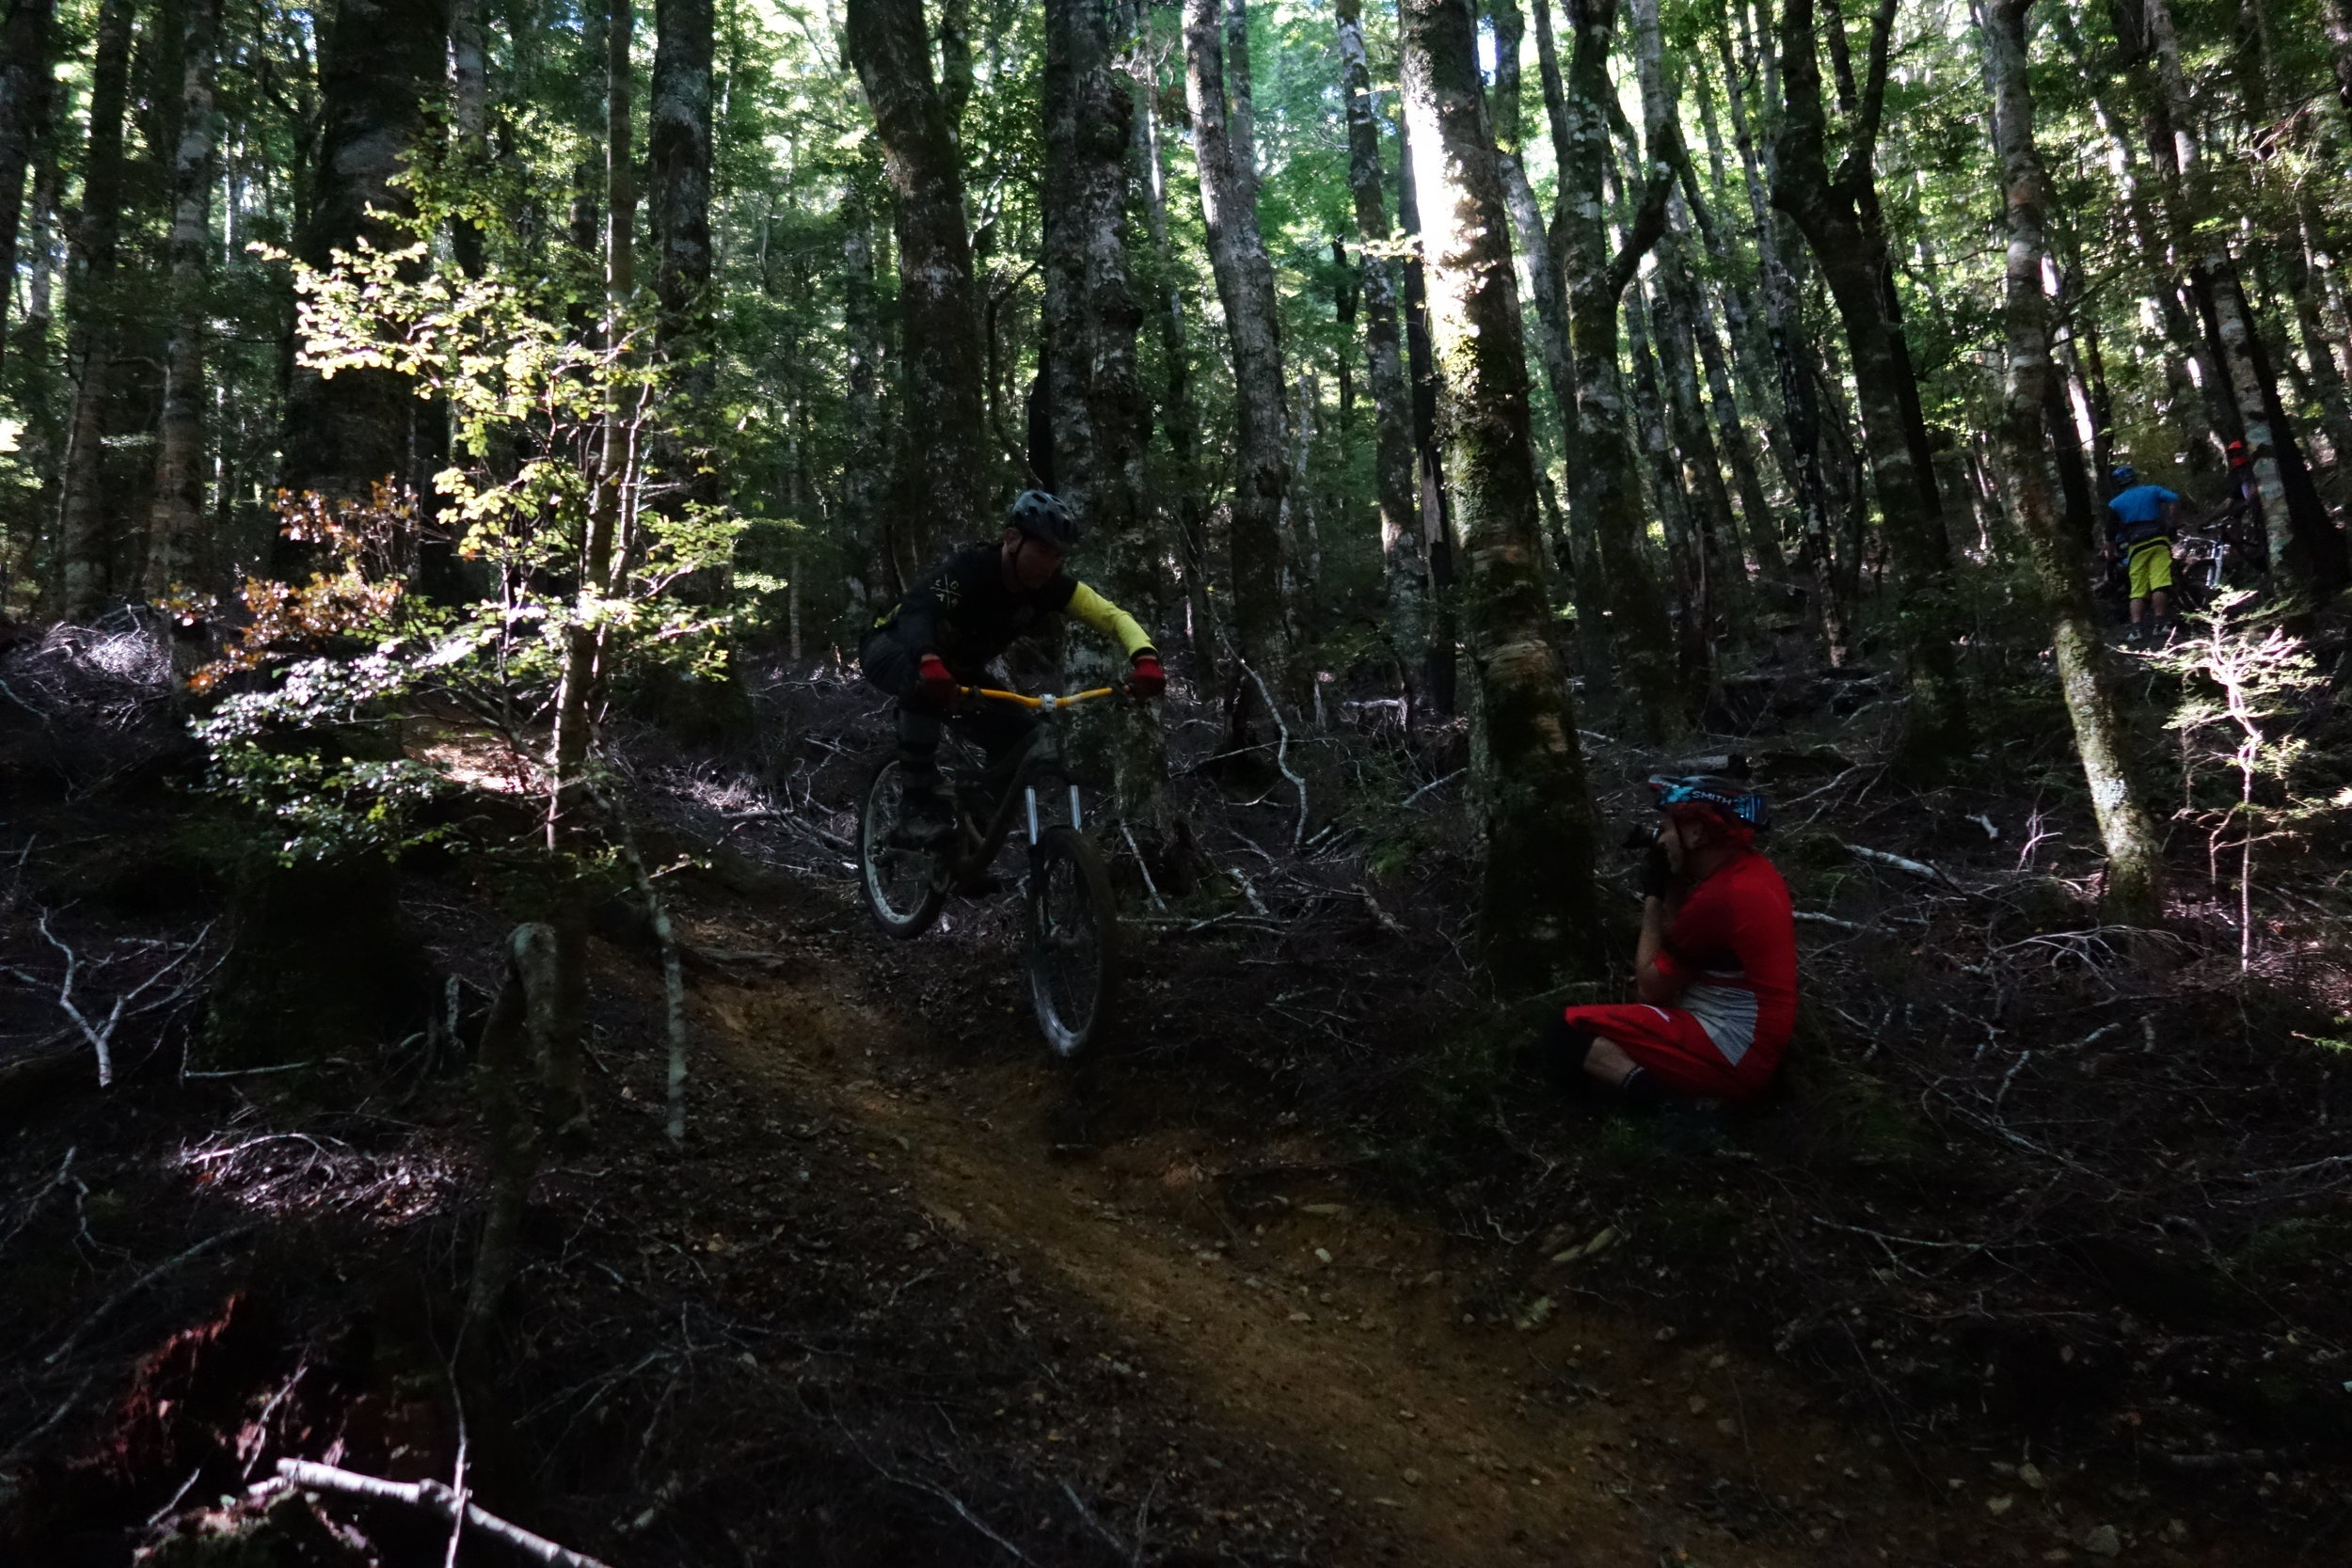 """When Scottish Dave isn't whipping up a malaysian goat curry with pumpkin and saffron rice, he's often seen hucking his BigHit down the trails. Jeff Carter going for the money shot. Half the guys who worked here have shitty 26"""" wheeled bikes from over 5 years ago but they will still smash your face off when it comes to dominating rowdy steep trails. Respect."""